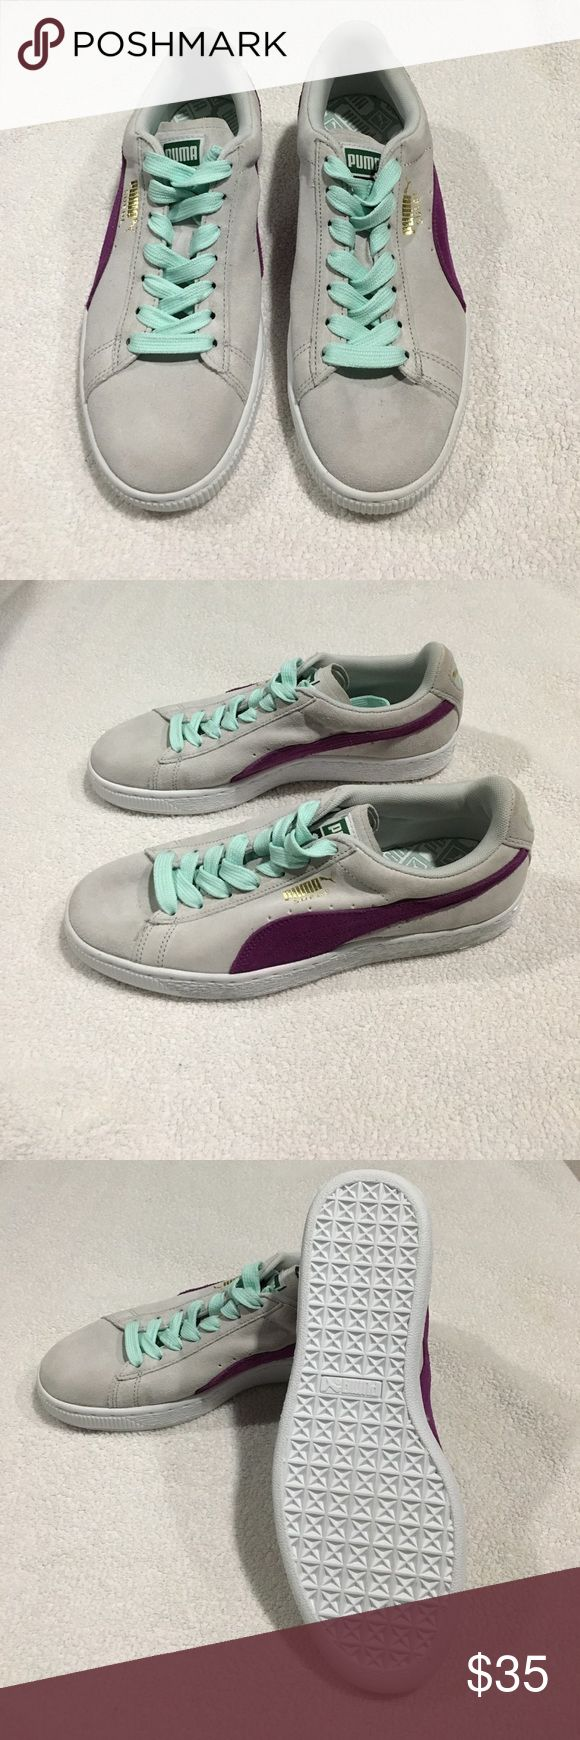 Puma Classic Suede Women's Sneaker Brand new condition Puma Classic Suede Women's Sneaker Light Grey and Purple with mint laces. Women's size 9. Great sneaker for upcoming spring season! Does not include sneaker box. Puma Shoes Sneakers